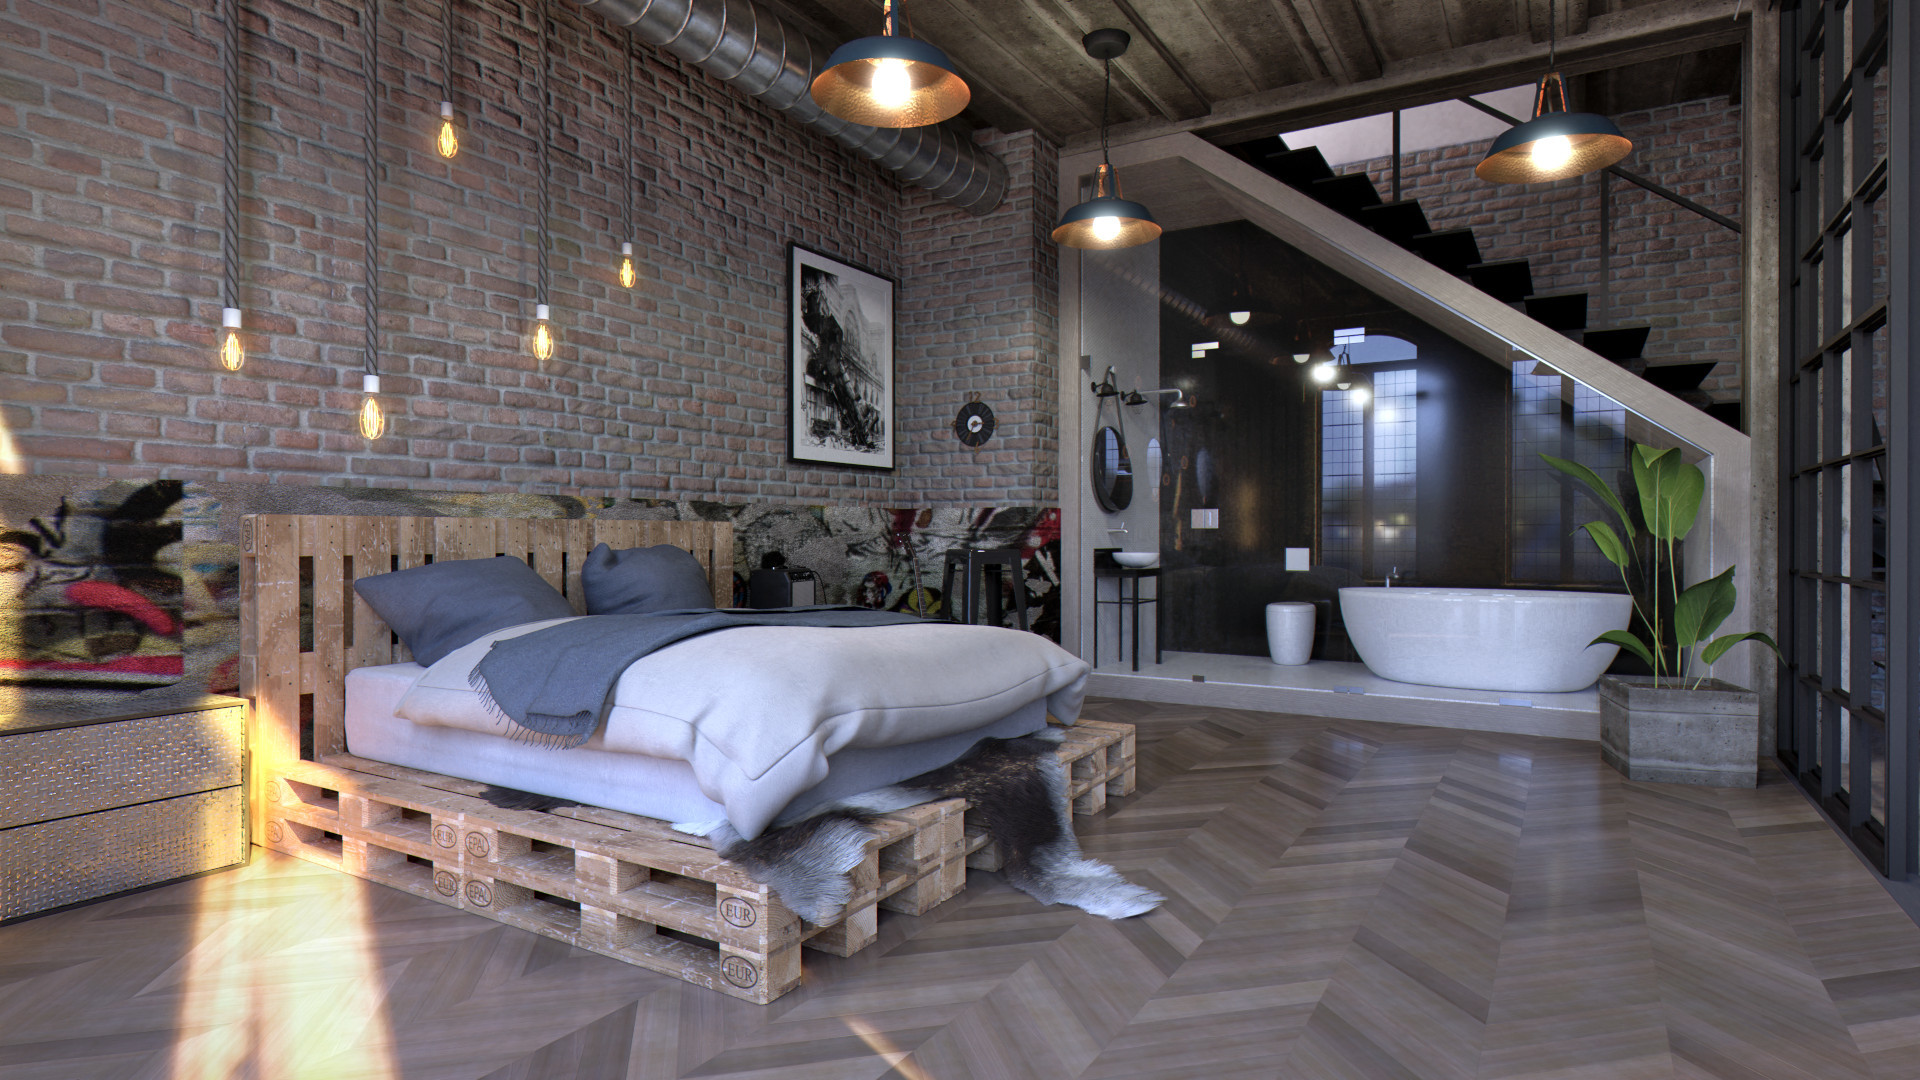 a rock musician's loft bedroom